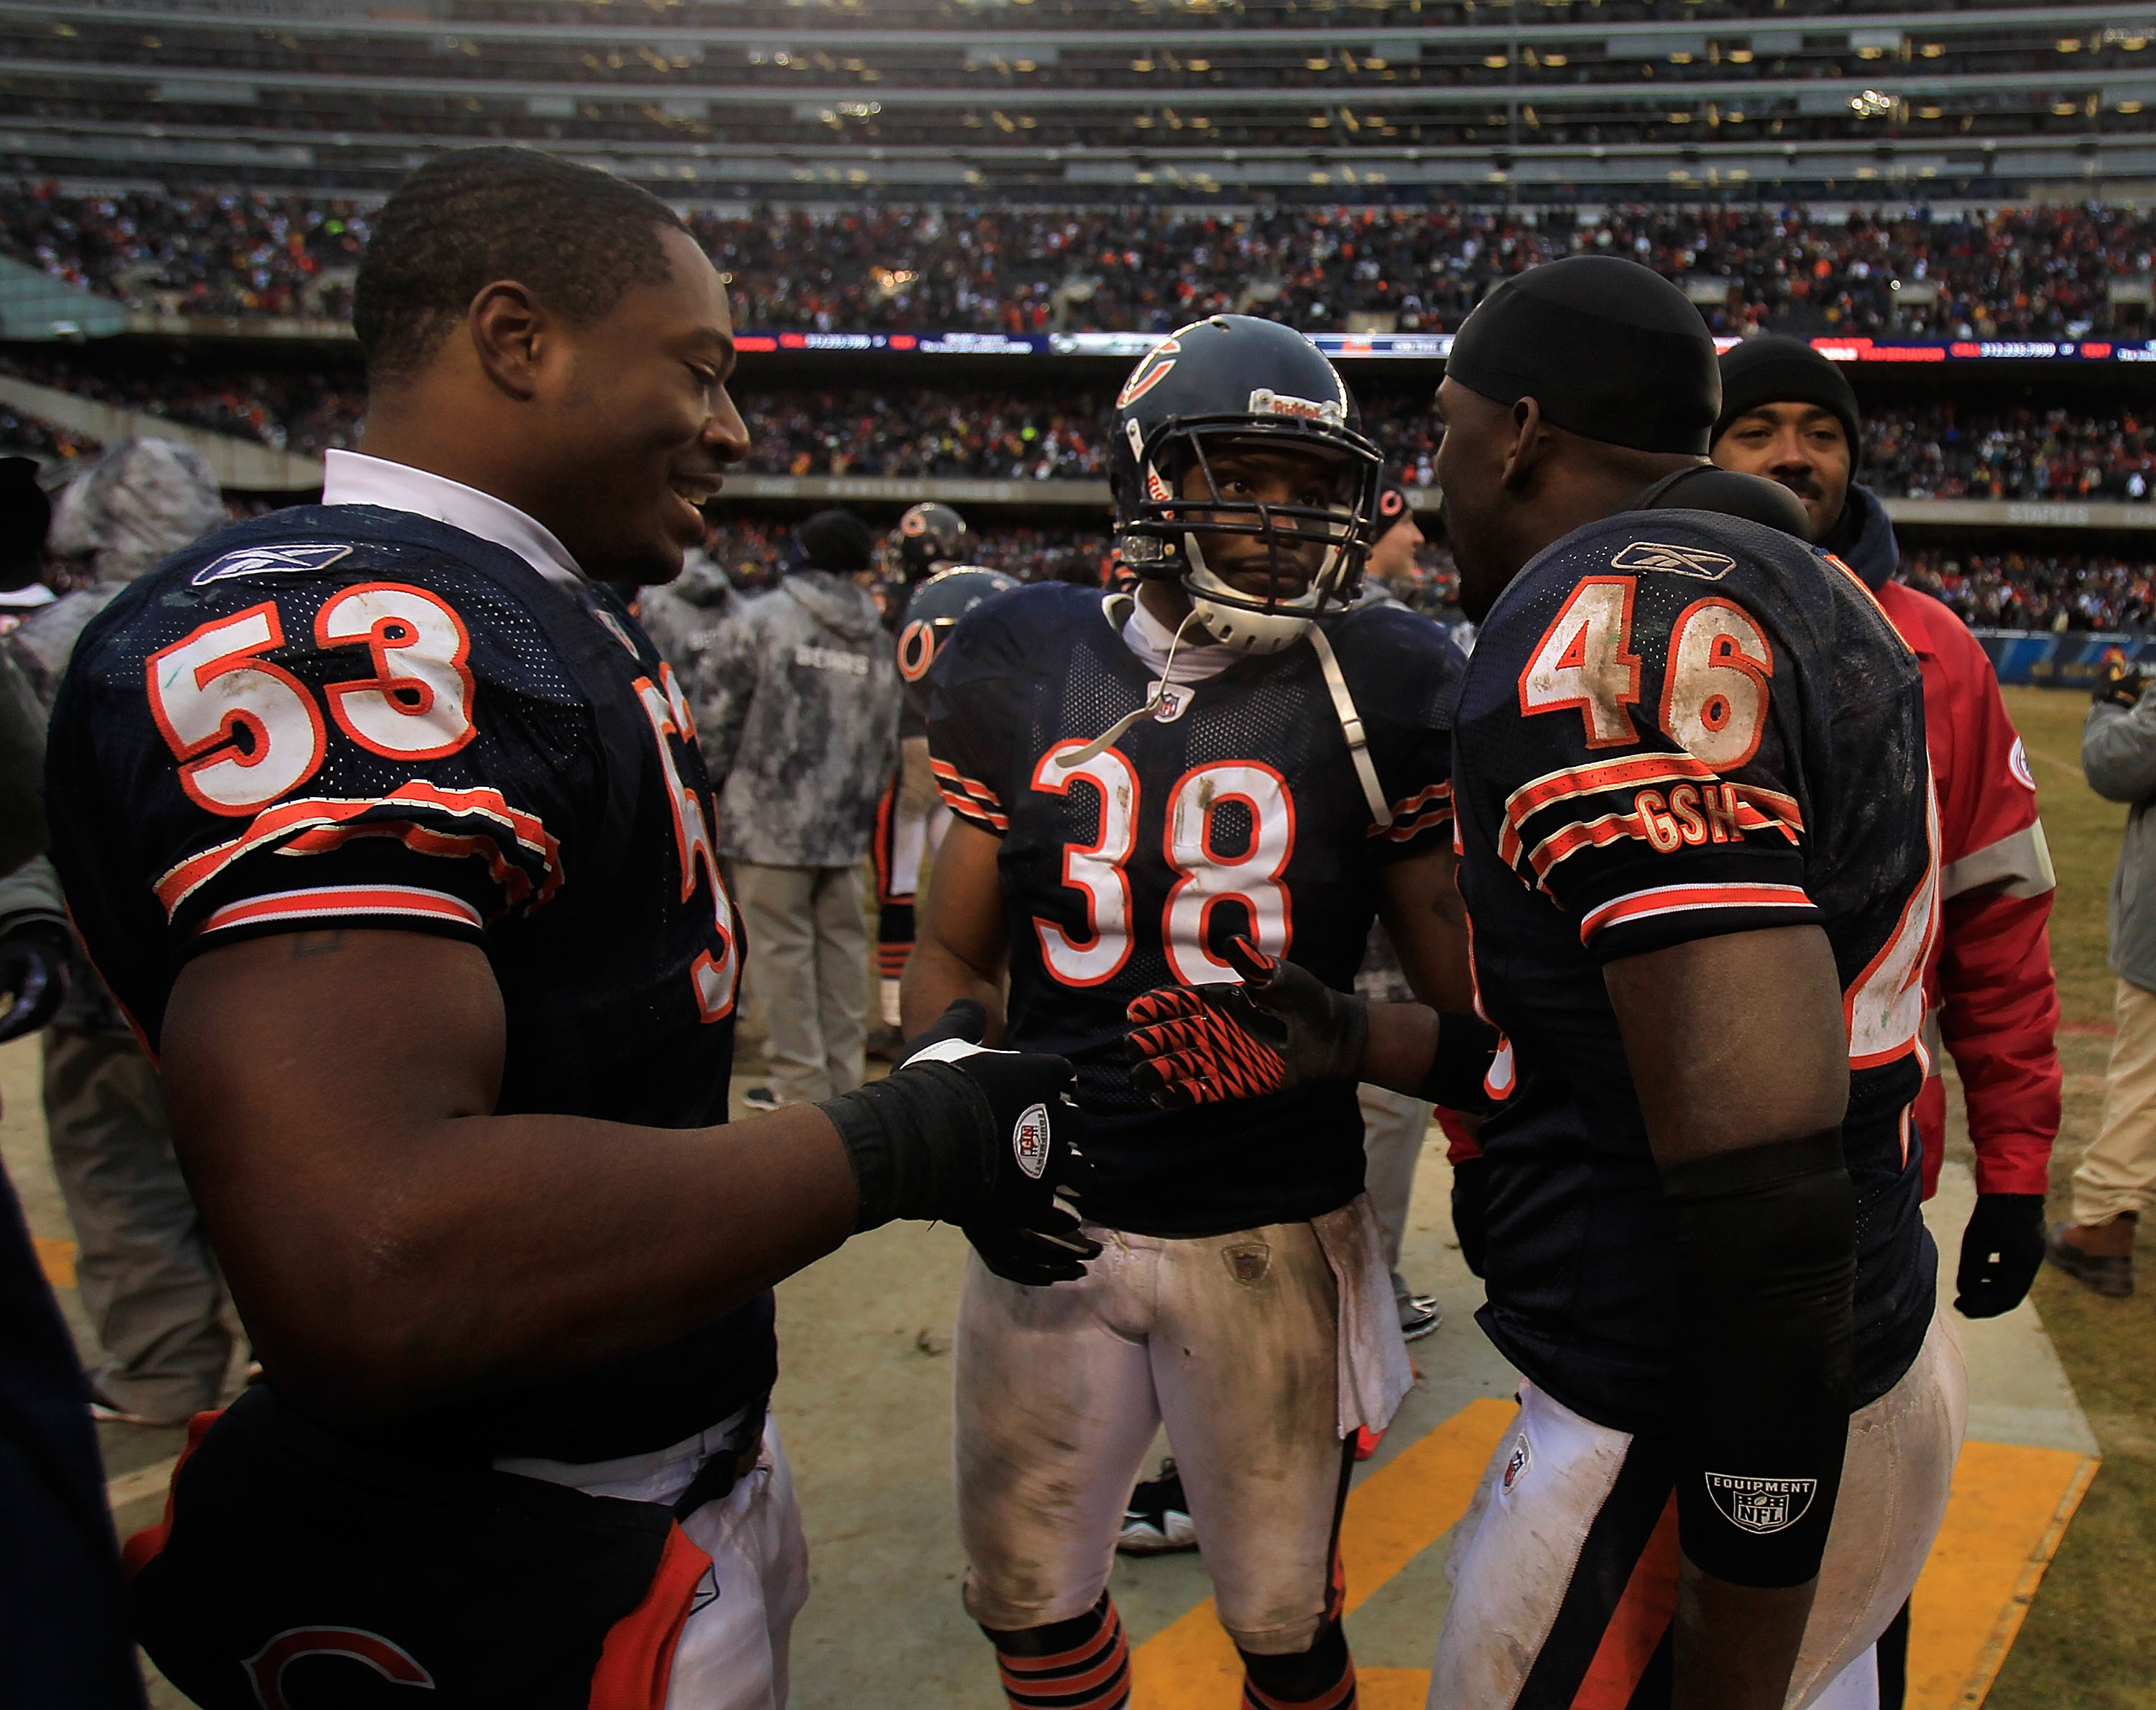 CHICAGO, IL - DECEMBER 26: Chris Harris #46 of the Chicago Bears is congratulated by teammates Nick Roach #53 and Danieal Manning #38 after intercepting a pass in the final minute against the New York Jets at Soldier Field on December 26, 2010 in Chicago,